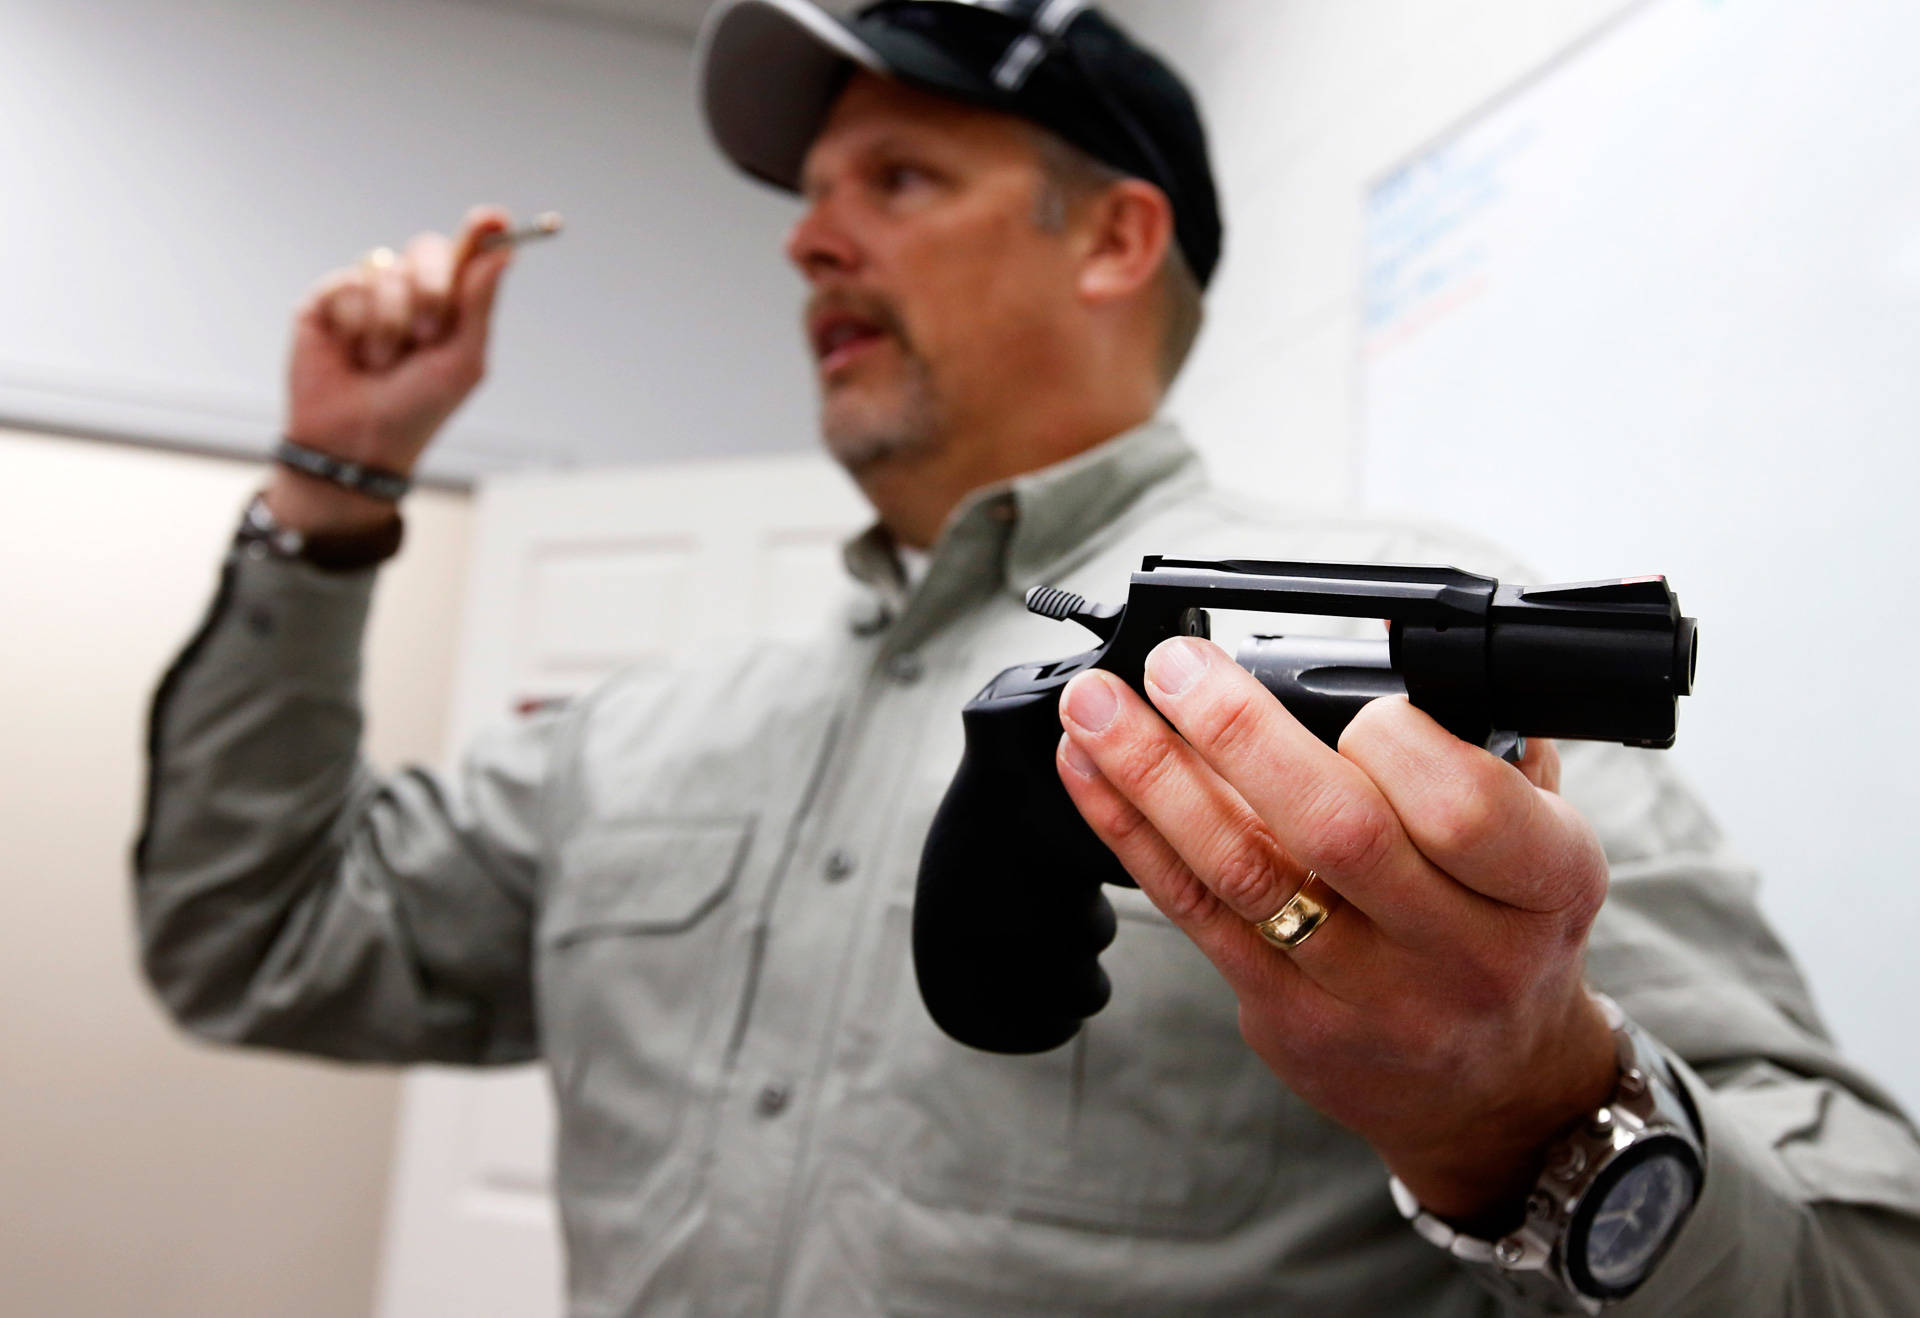 Court: No Right to Carry Concealed Weapons in Public